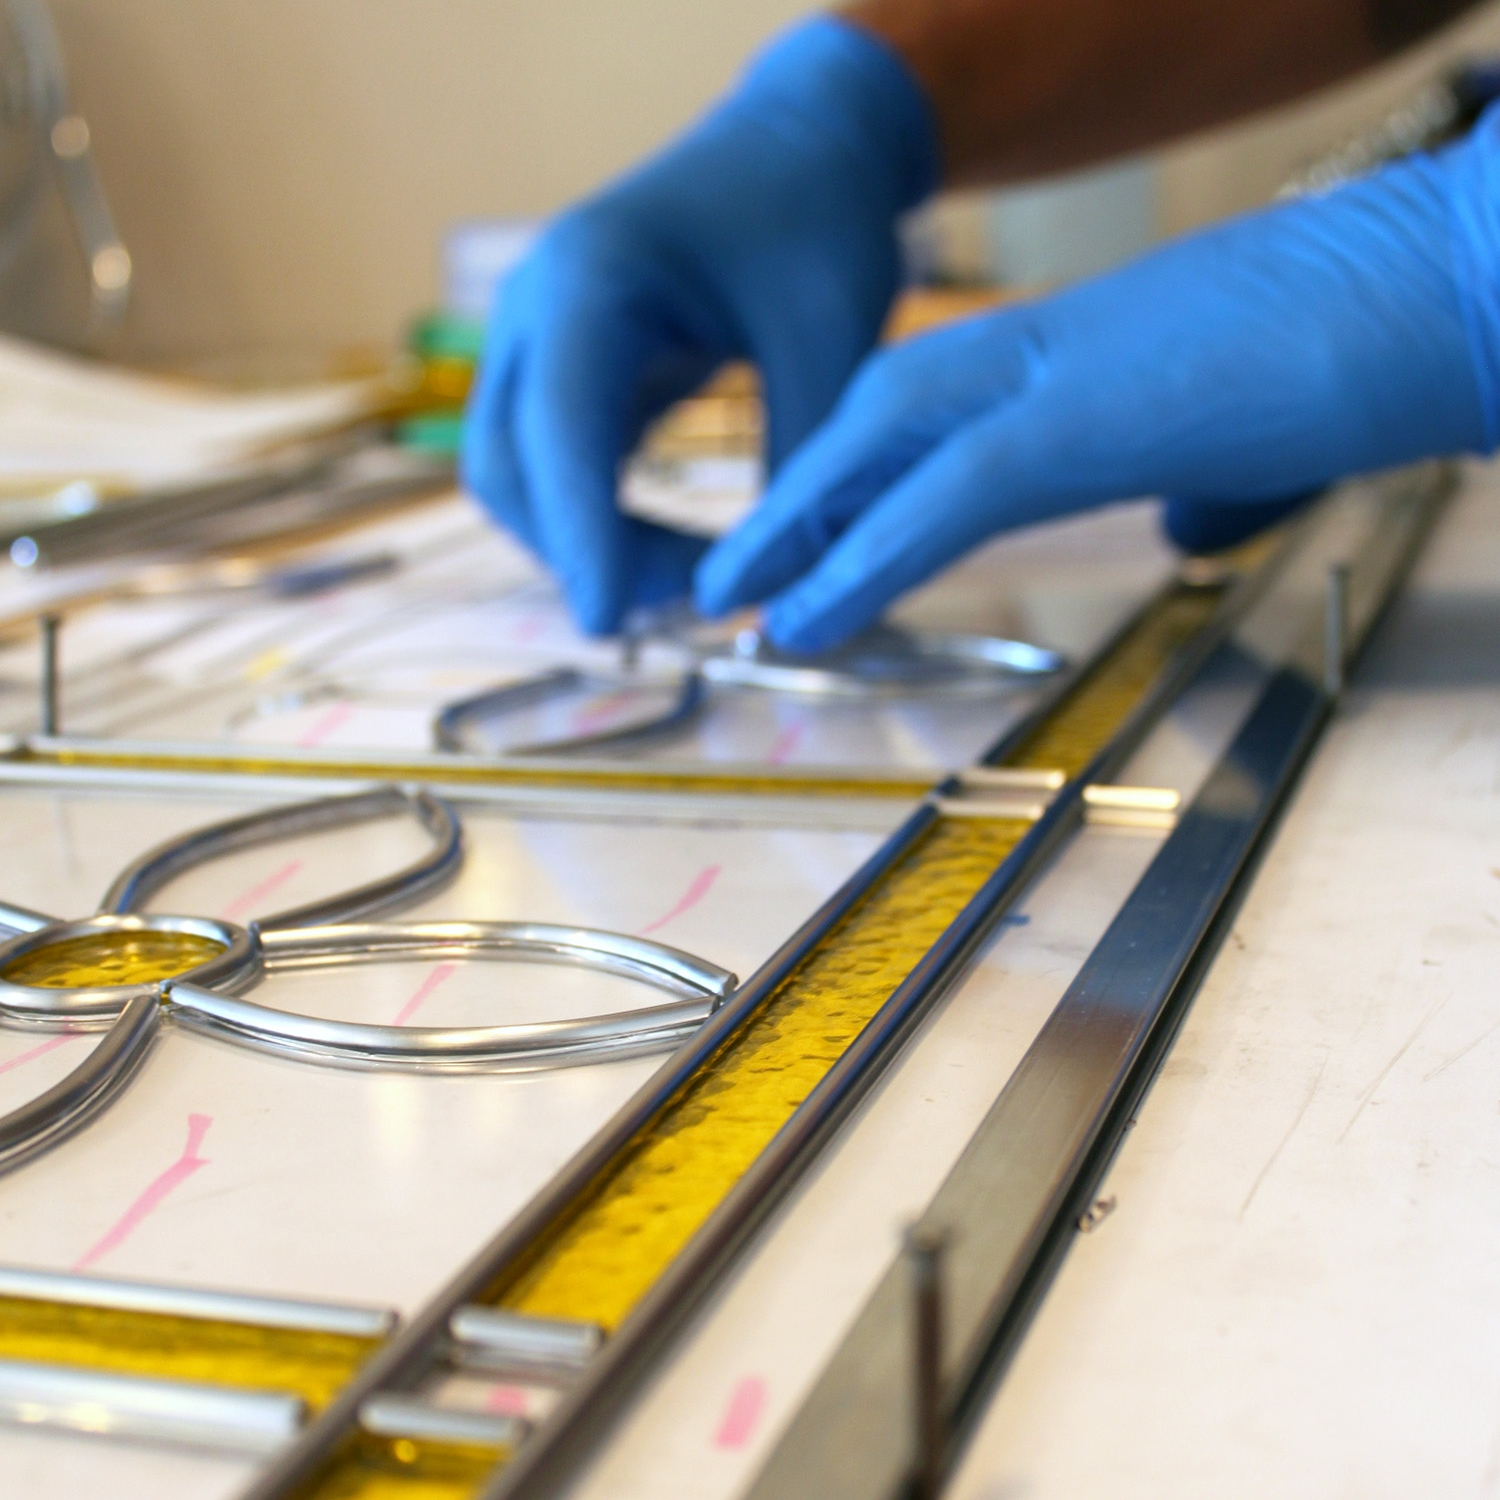 fabricating leaded glass panel stained glass studio palo alto atherton california san francisco san jose legacy glass.jpg